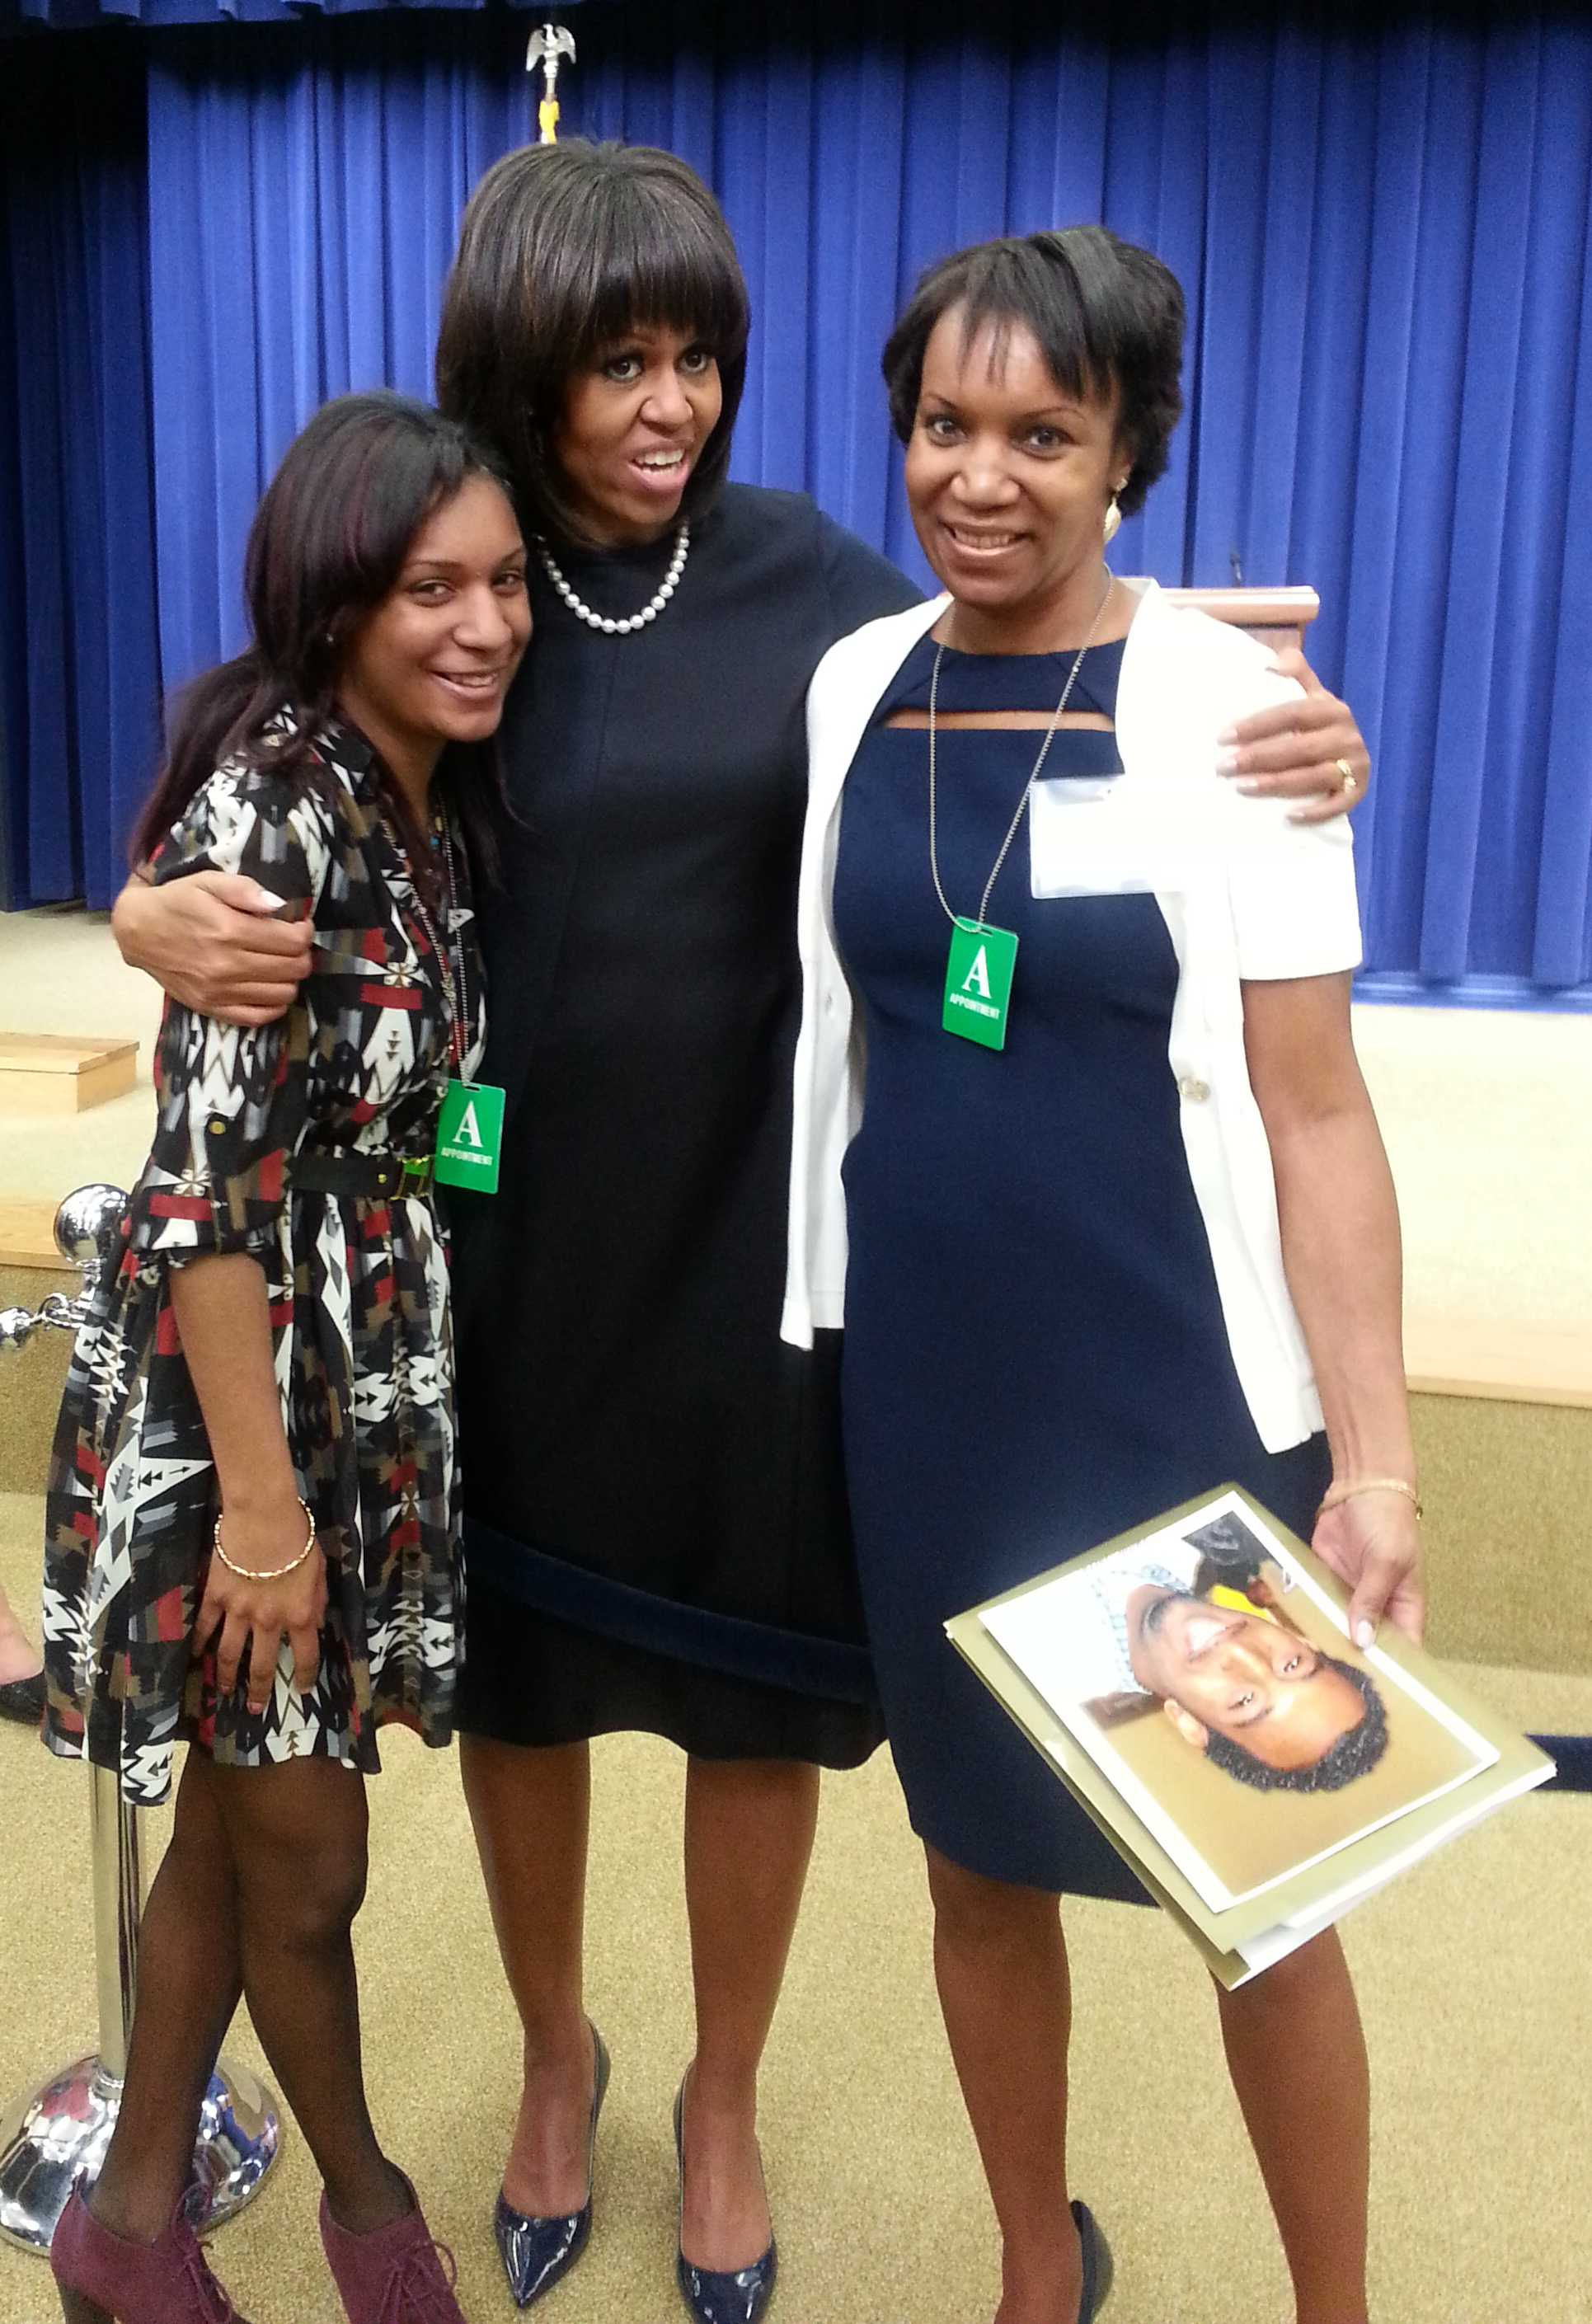 Ashton Murray (left) and Carolyn Murray (right) met first lady Michelle Obama at January's State of the Union Address. Ashton Murray will attend an anti-youth violence luncheon Wednesday with Obama and Chicago Mayor Rahm Emanuel.